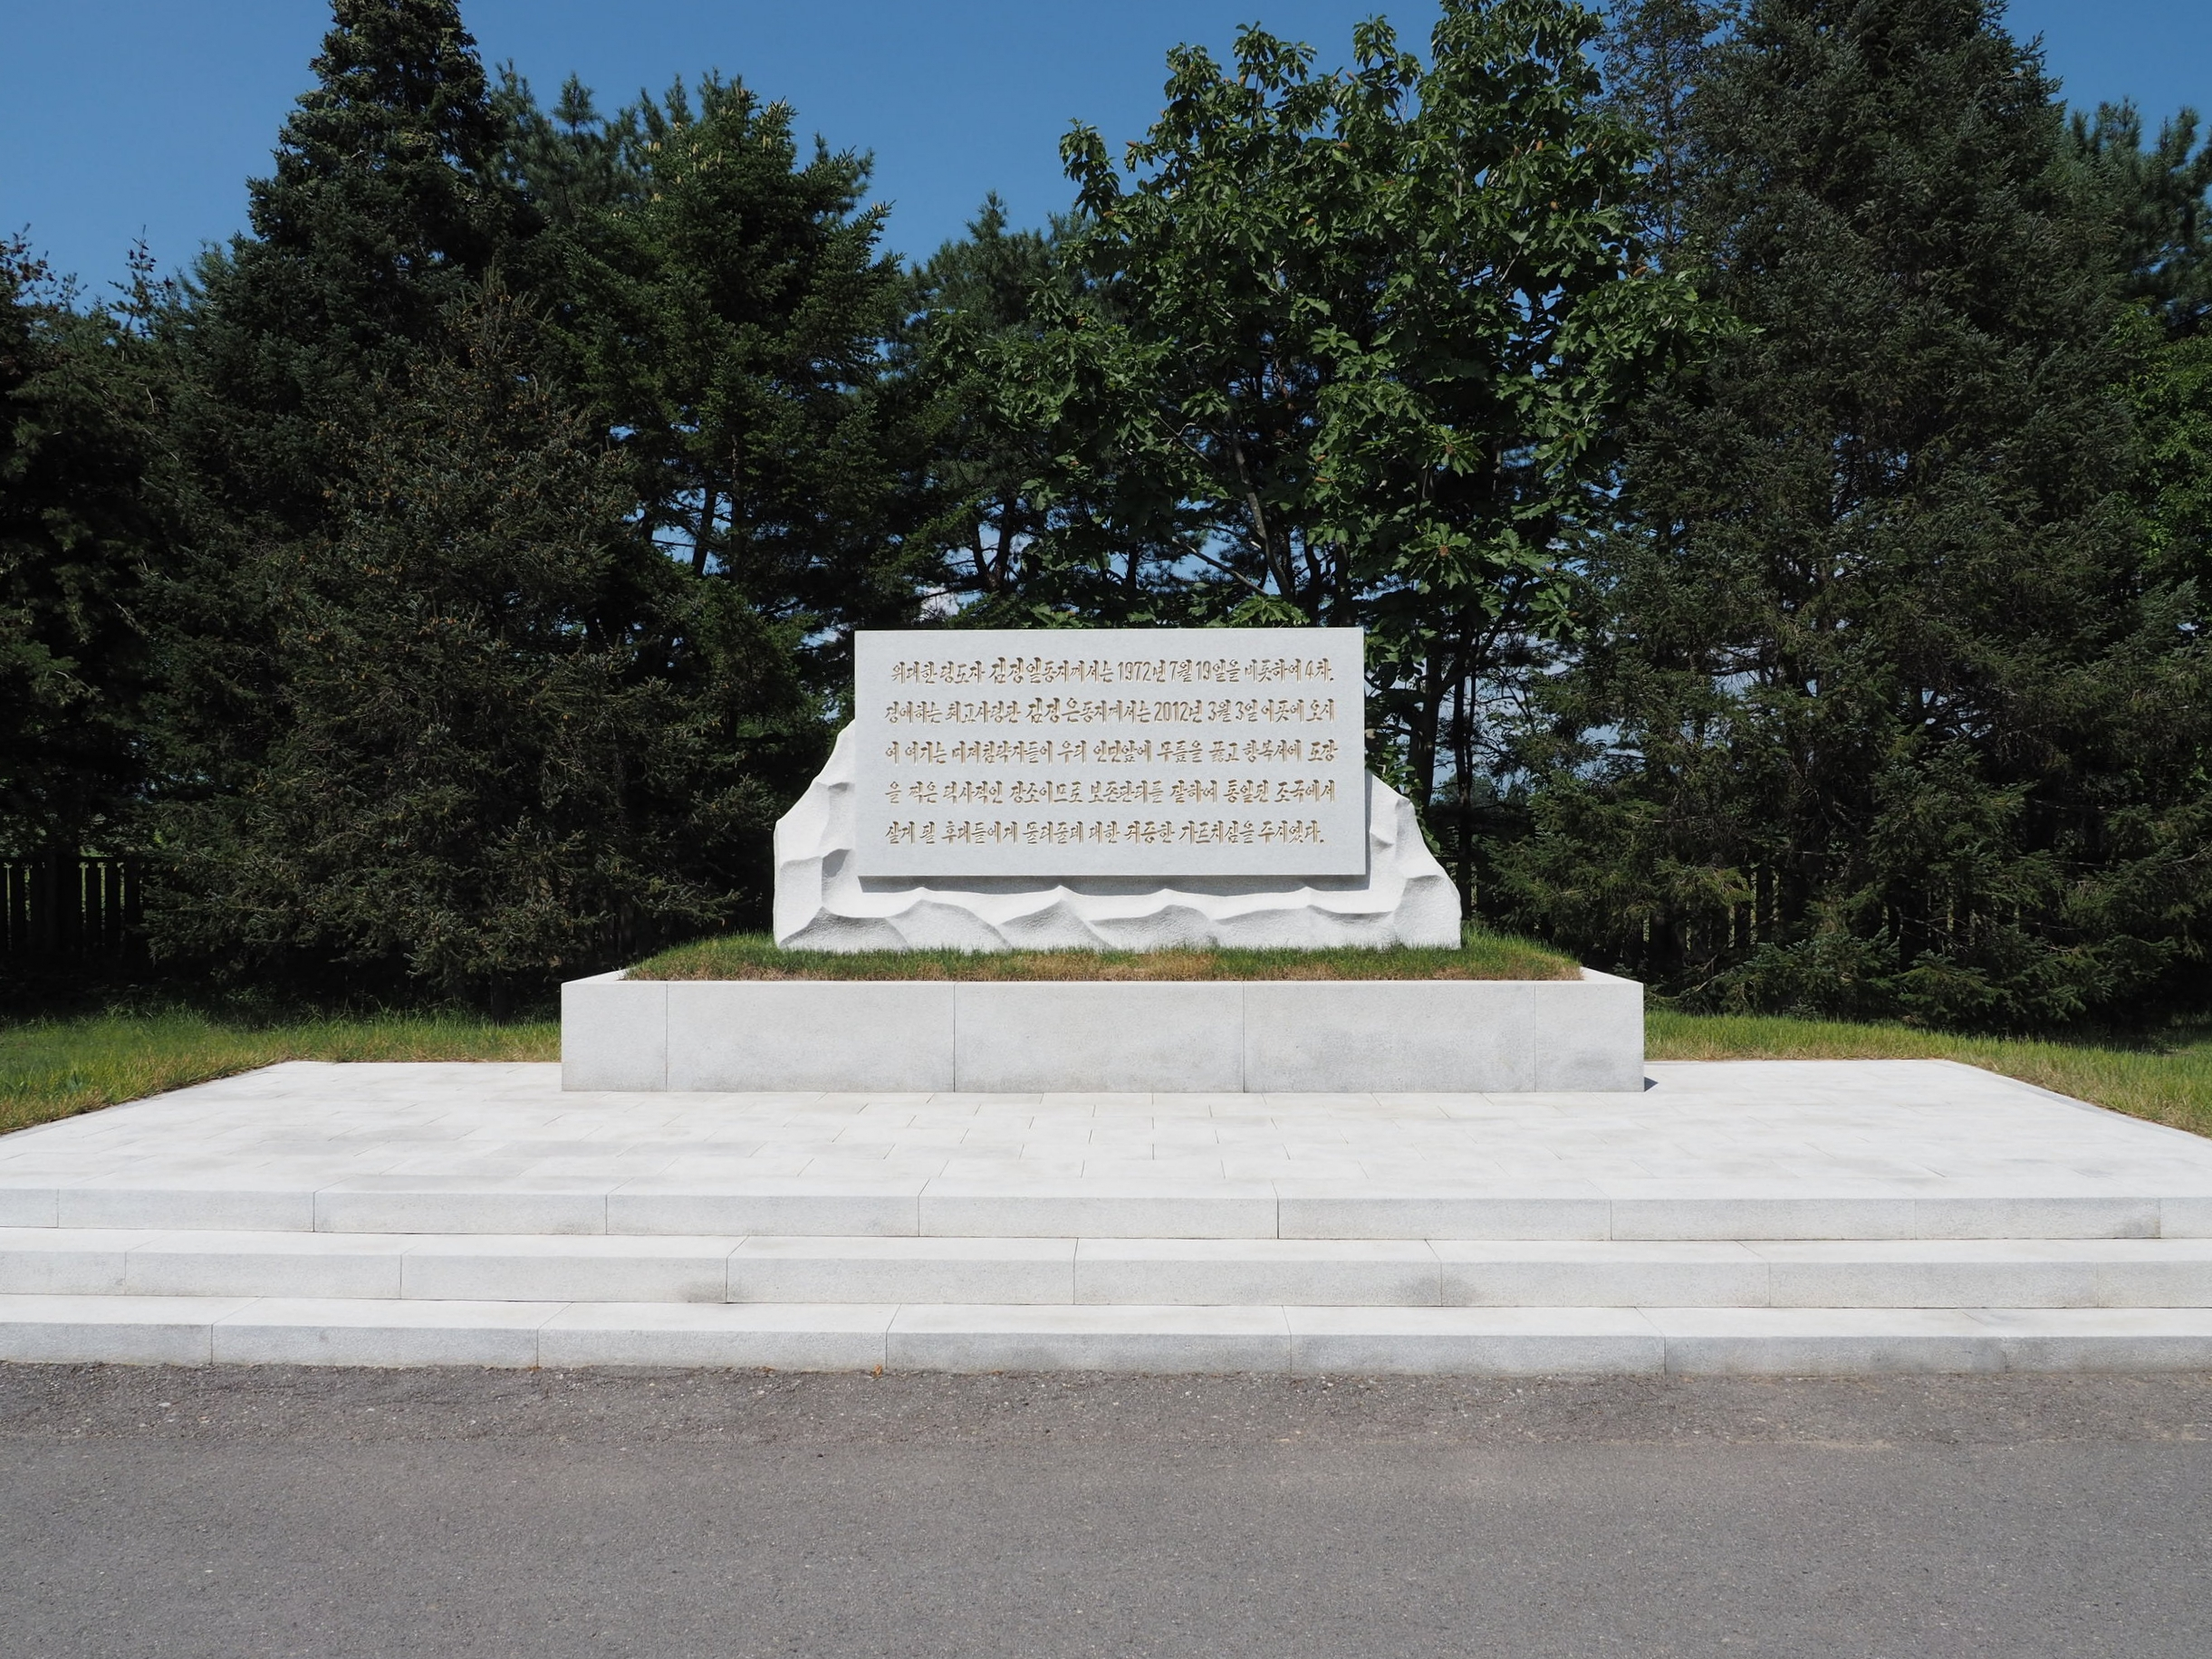 Memorial recognizing the signing of the armistice